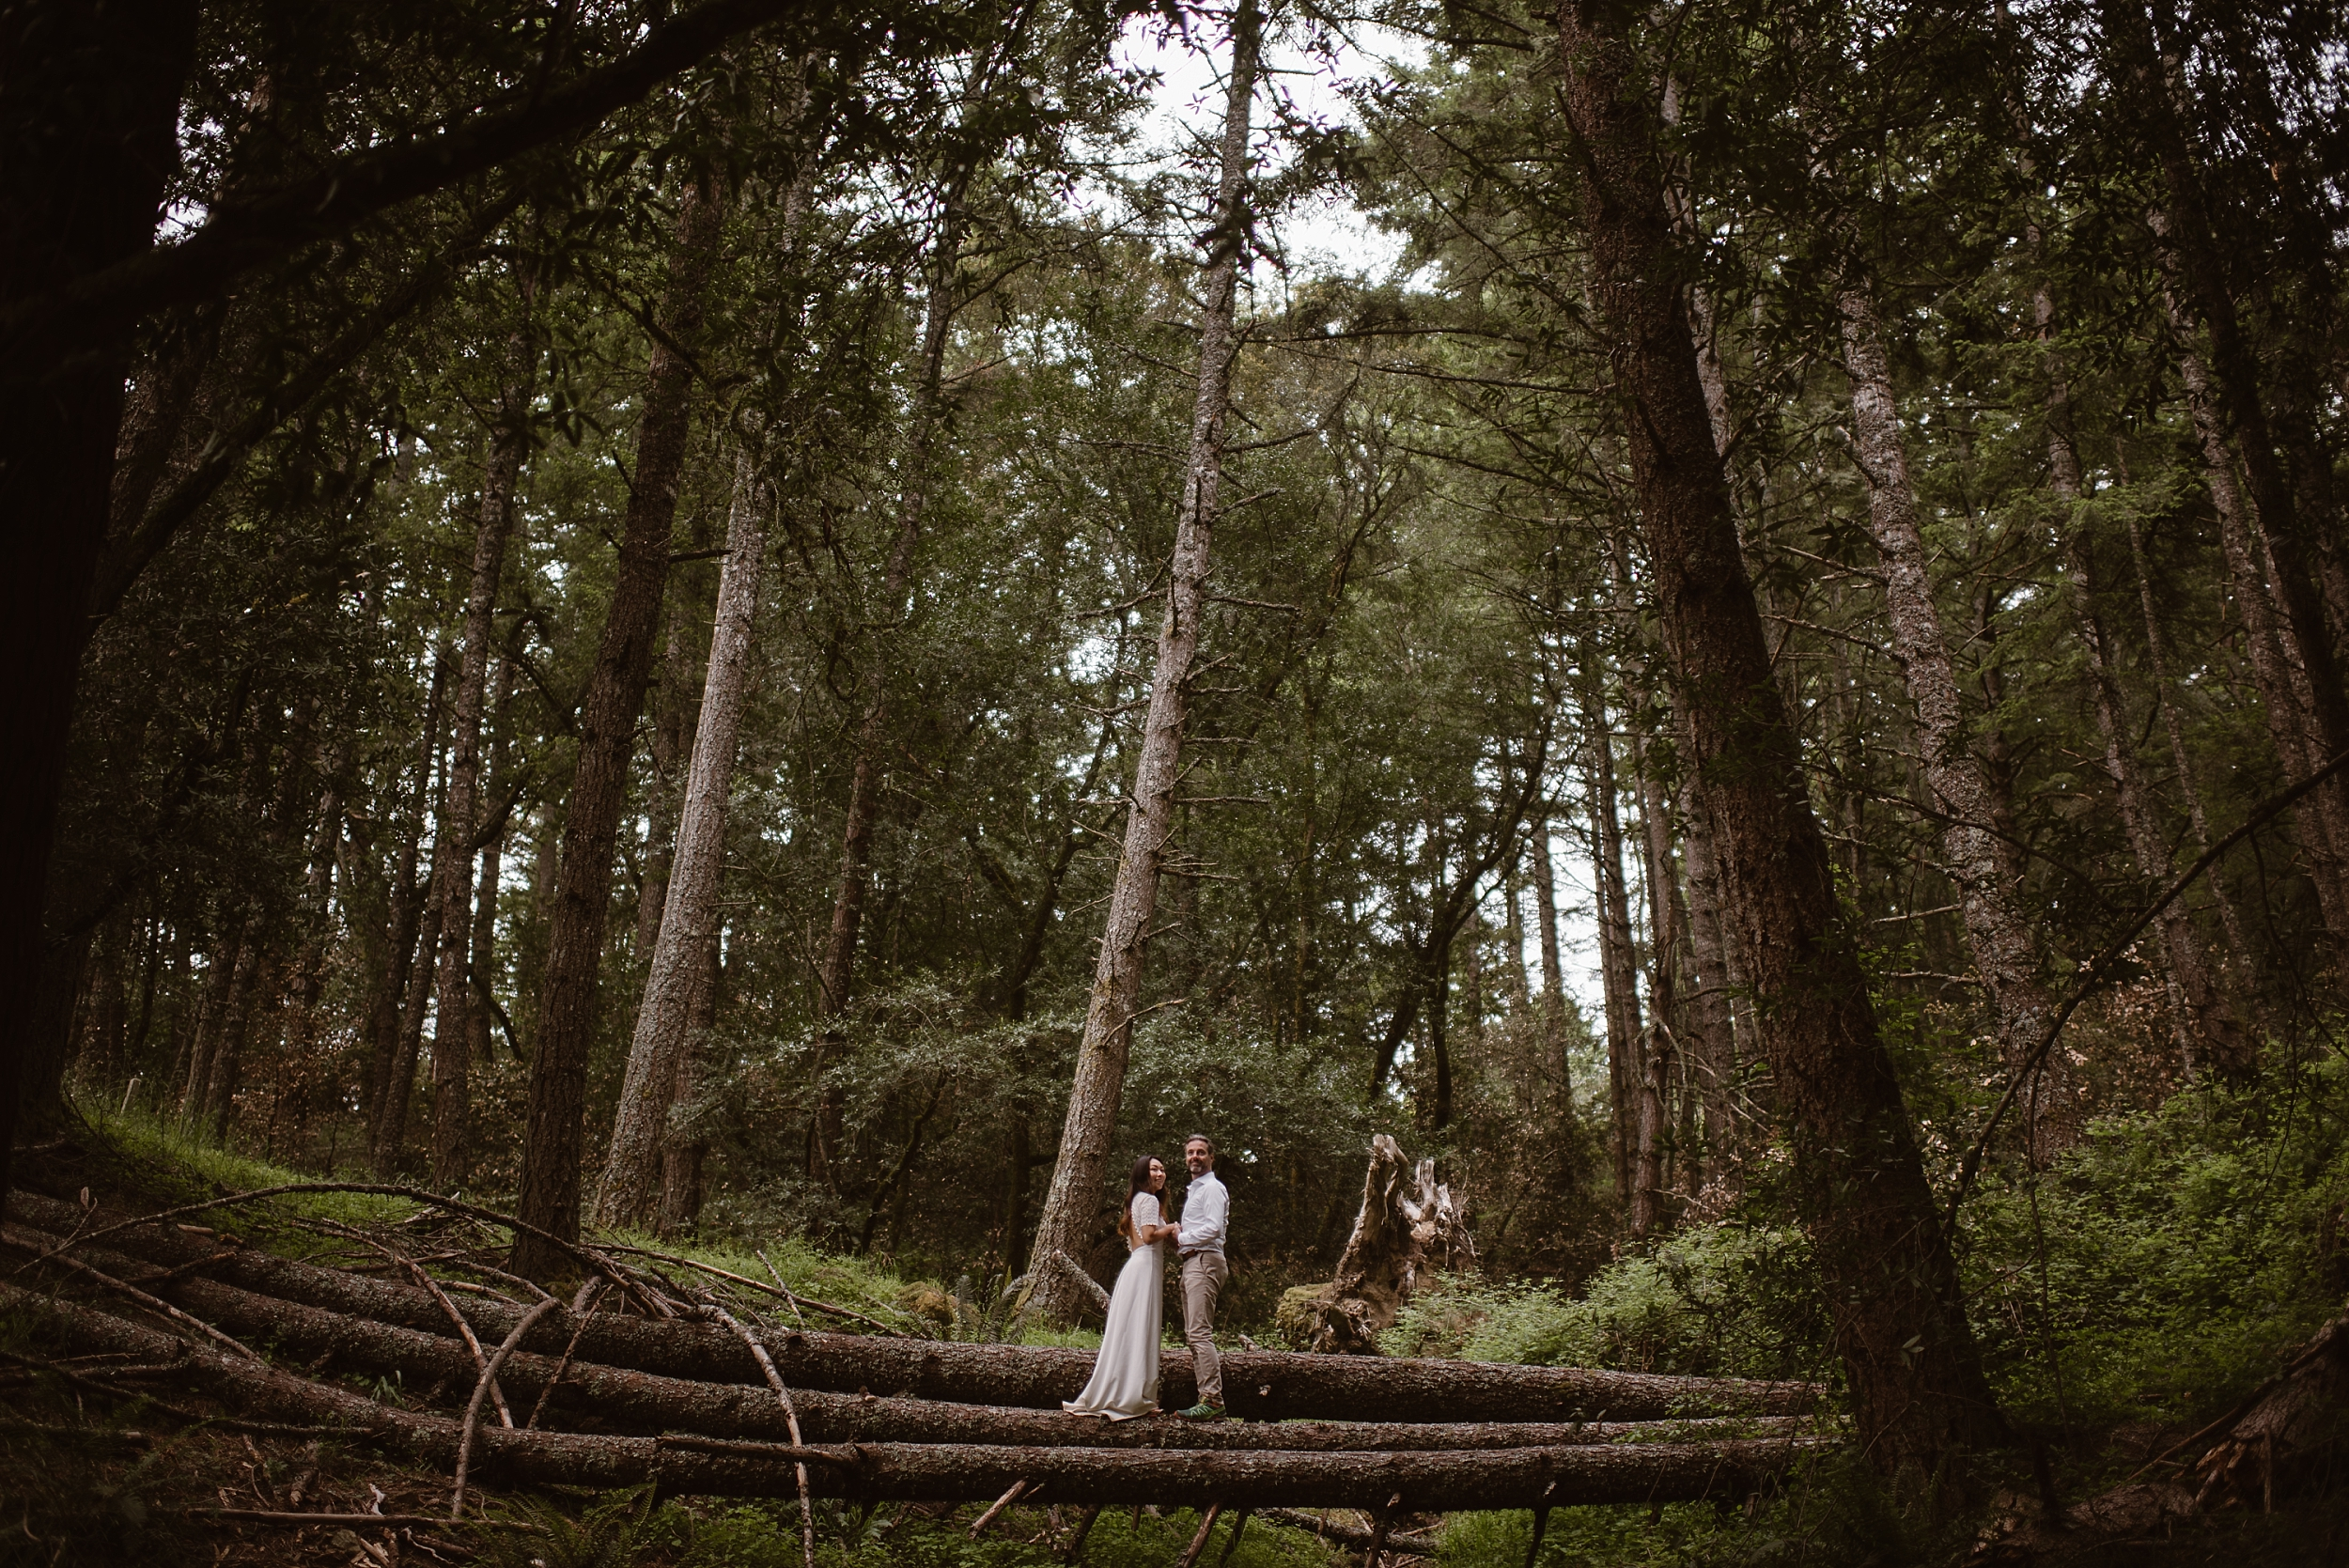 A newly married couple, still in their wedding attire, balance on a few fallen trees laying a few feet above the ground. Enormous green trees surround them in their destination elopement in an old-growth forest in Washington.